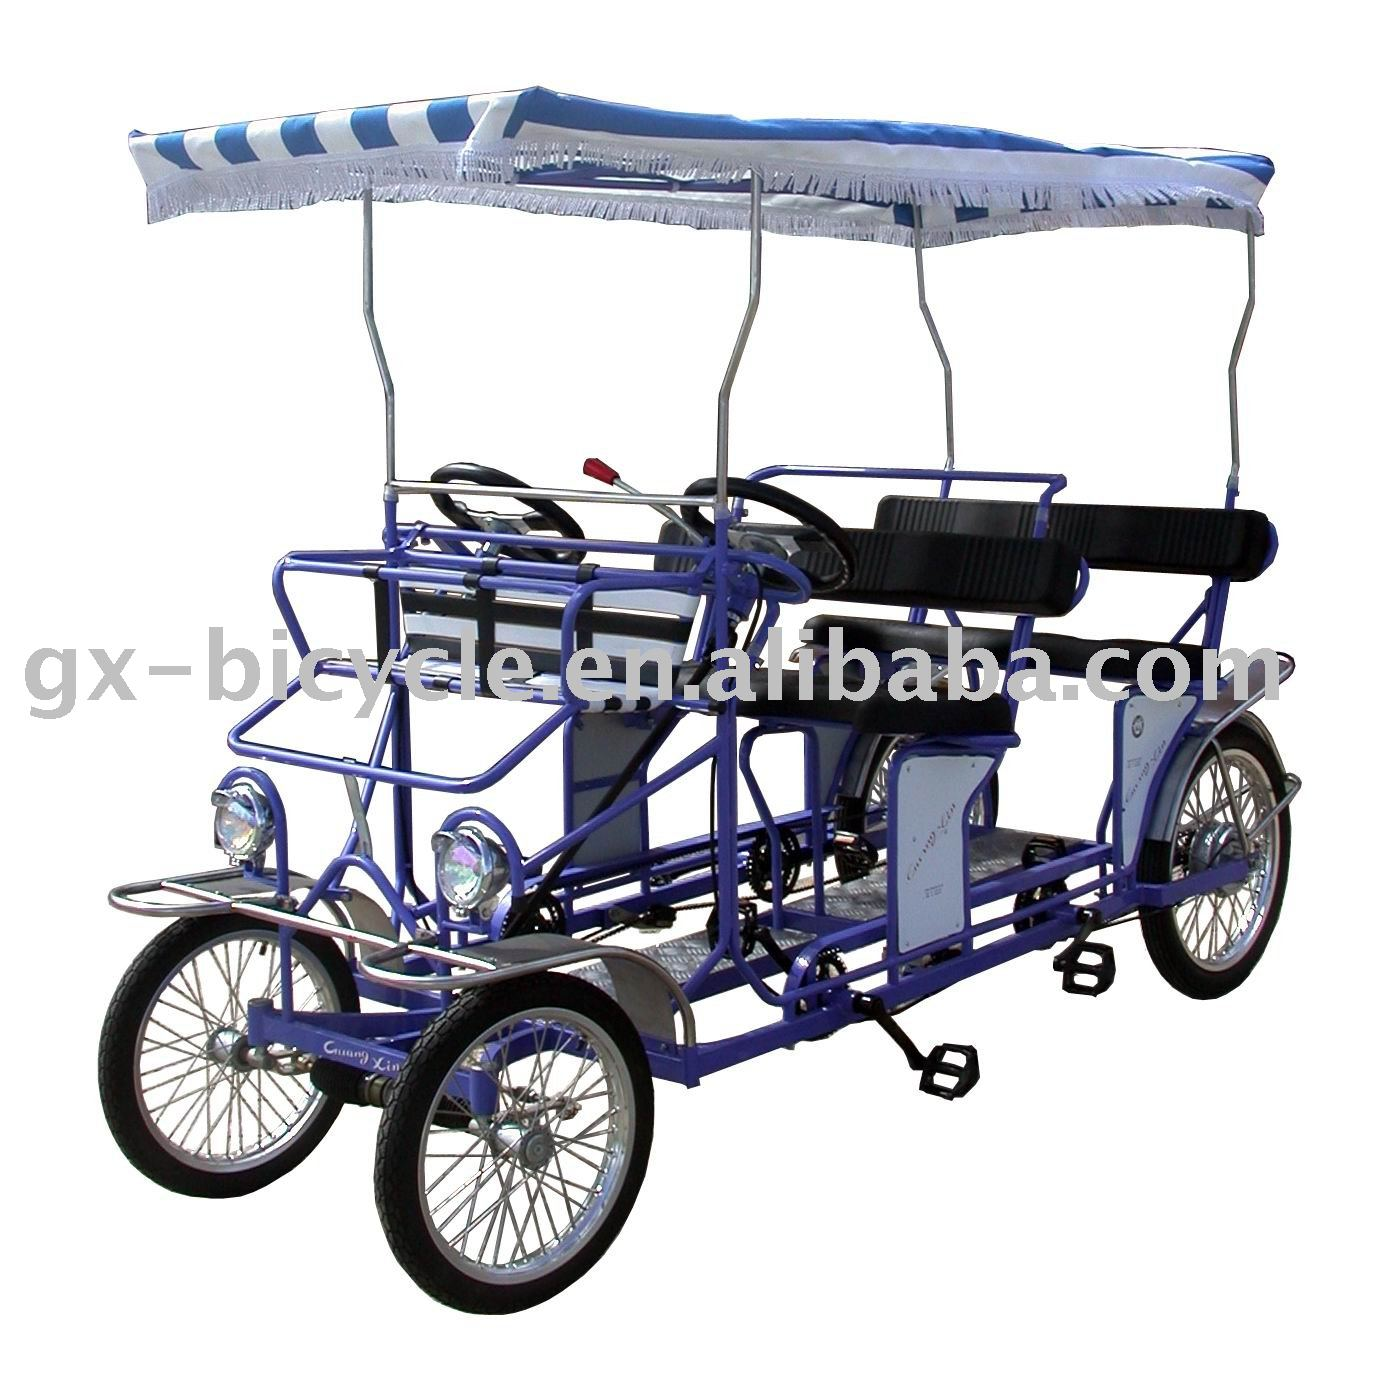 BLU BIKE QUAD-CYCLE